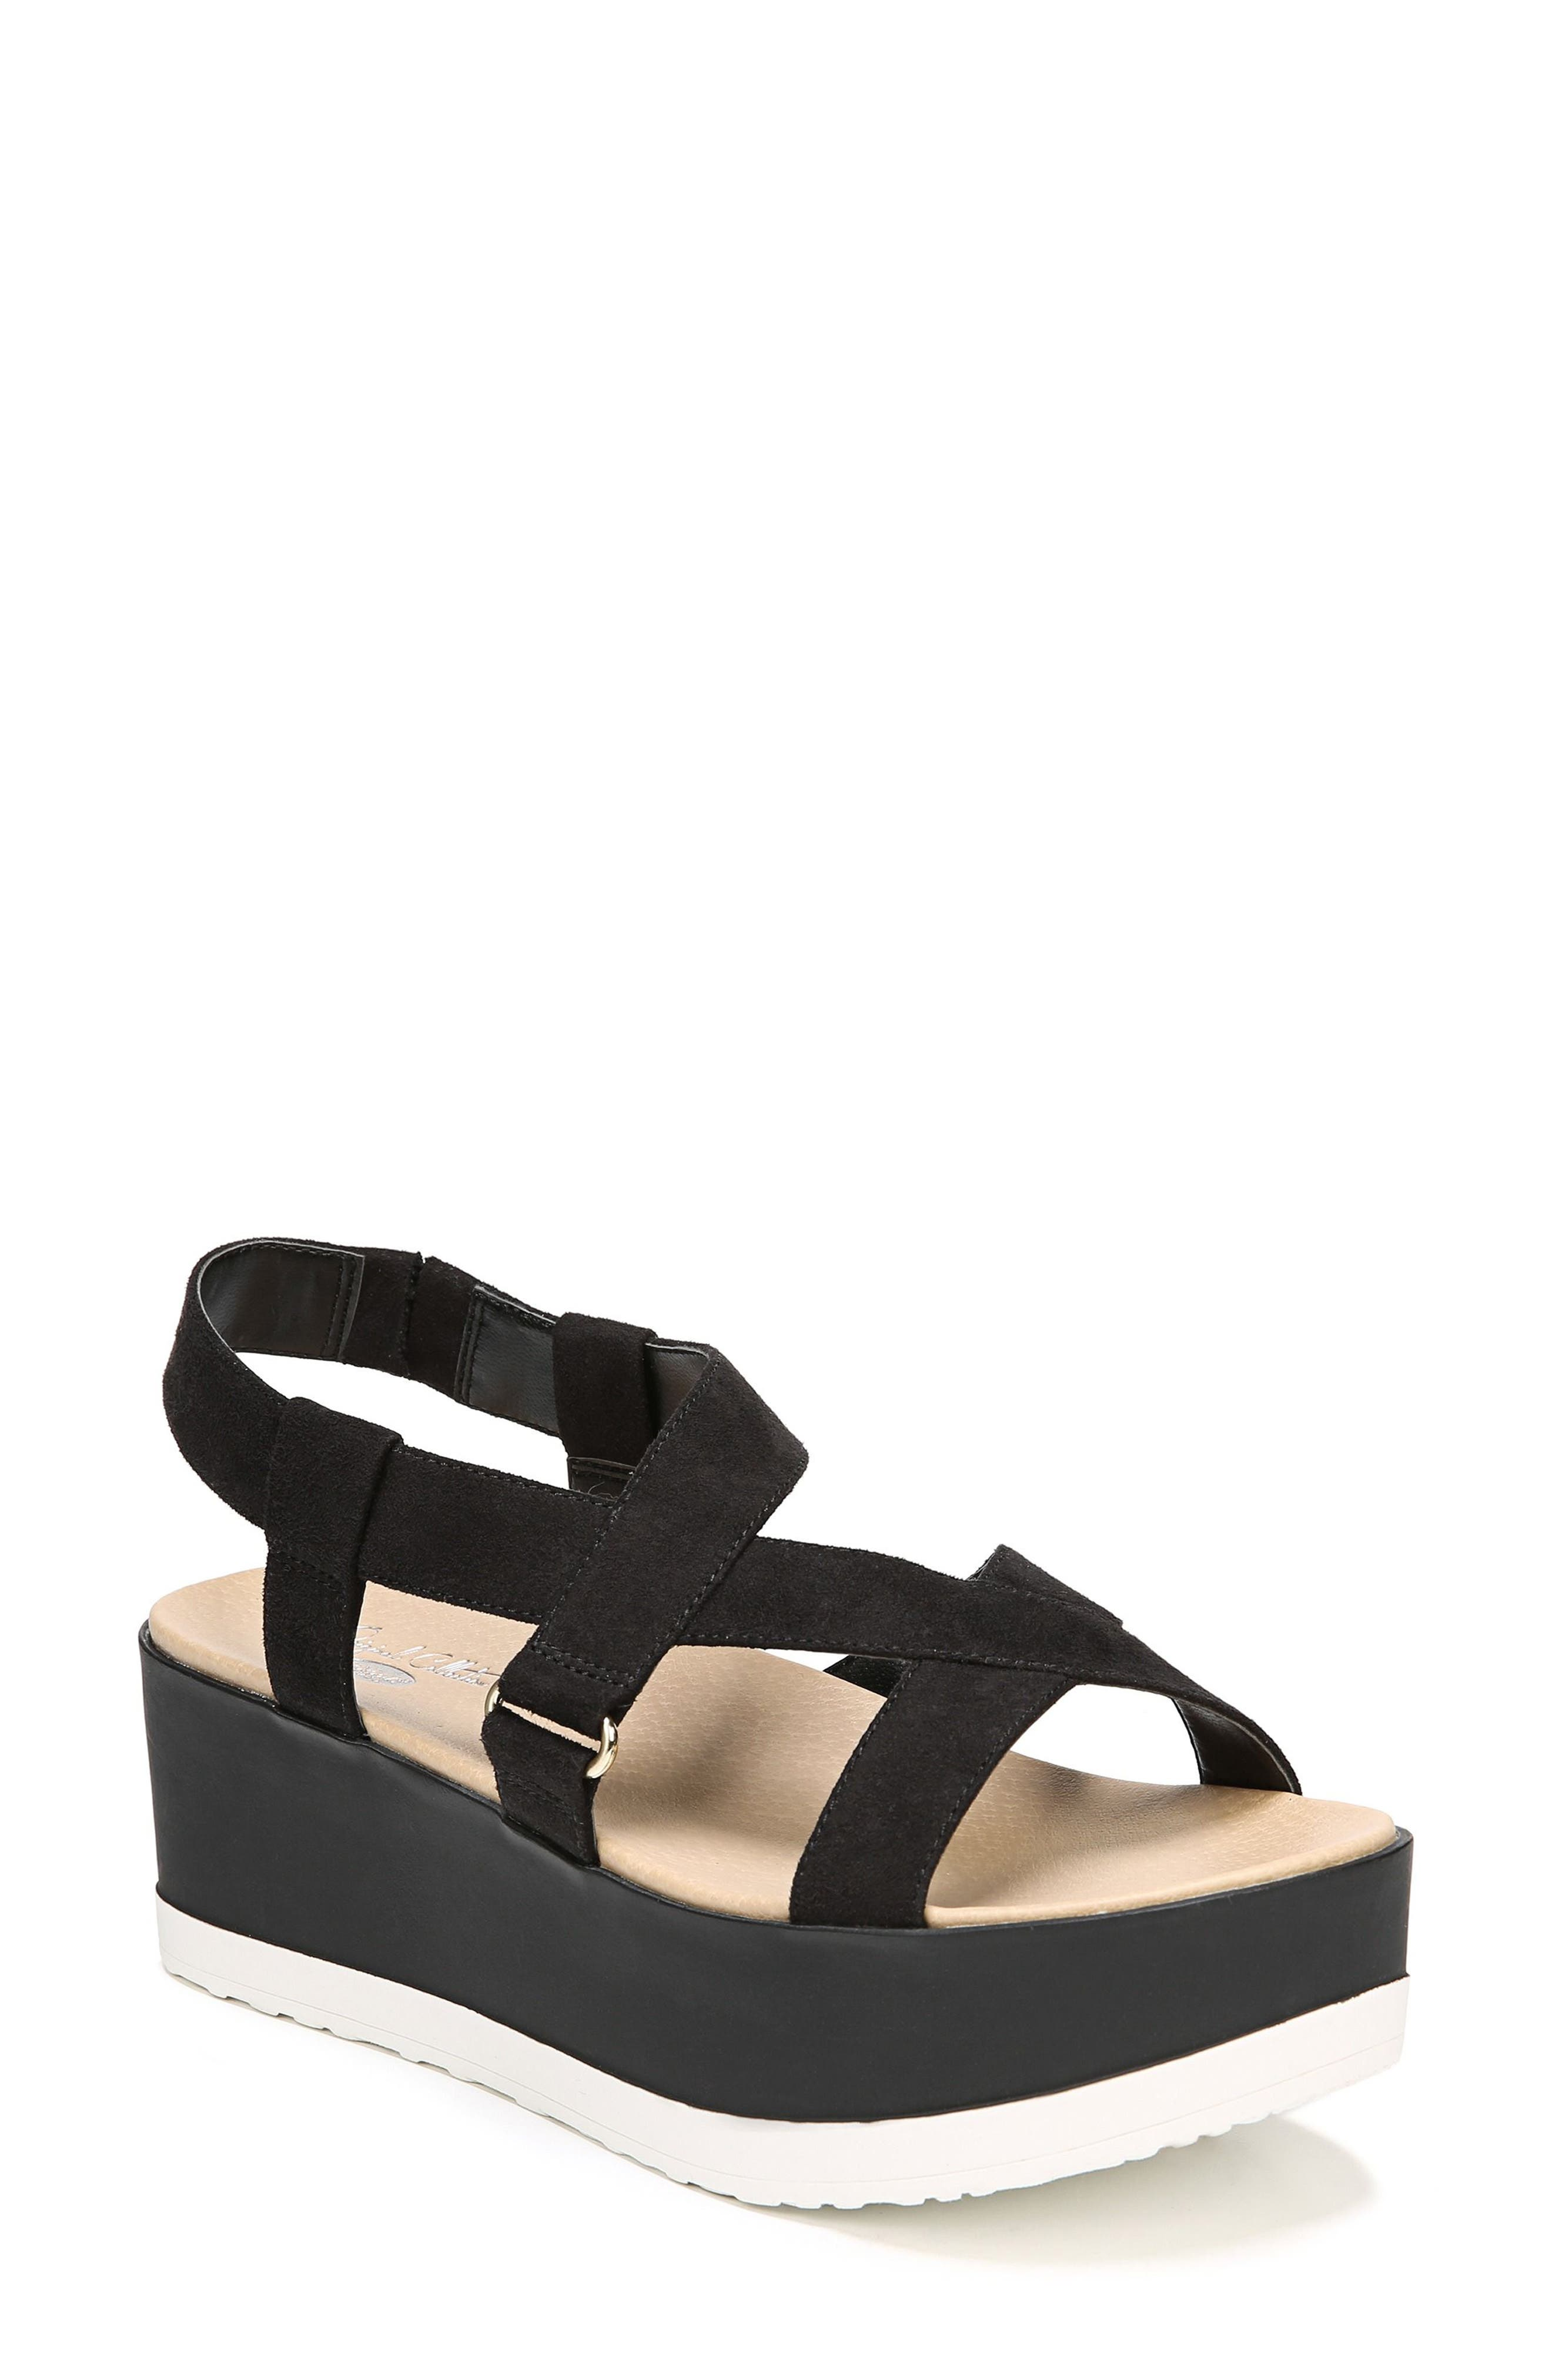 Companion Platform Sandal,                             Main thumbnail 1, color,                             BLACK FABRIC